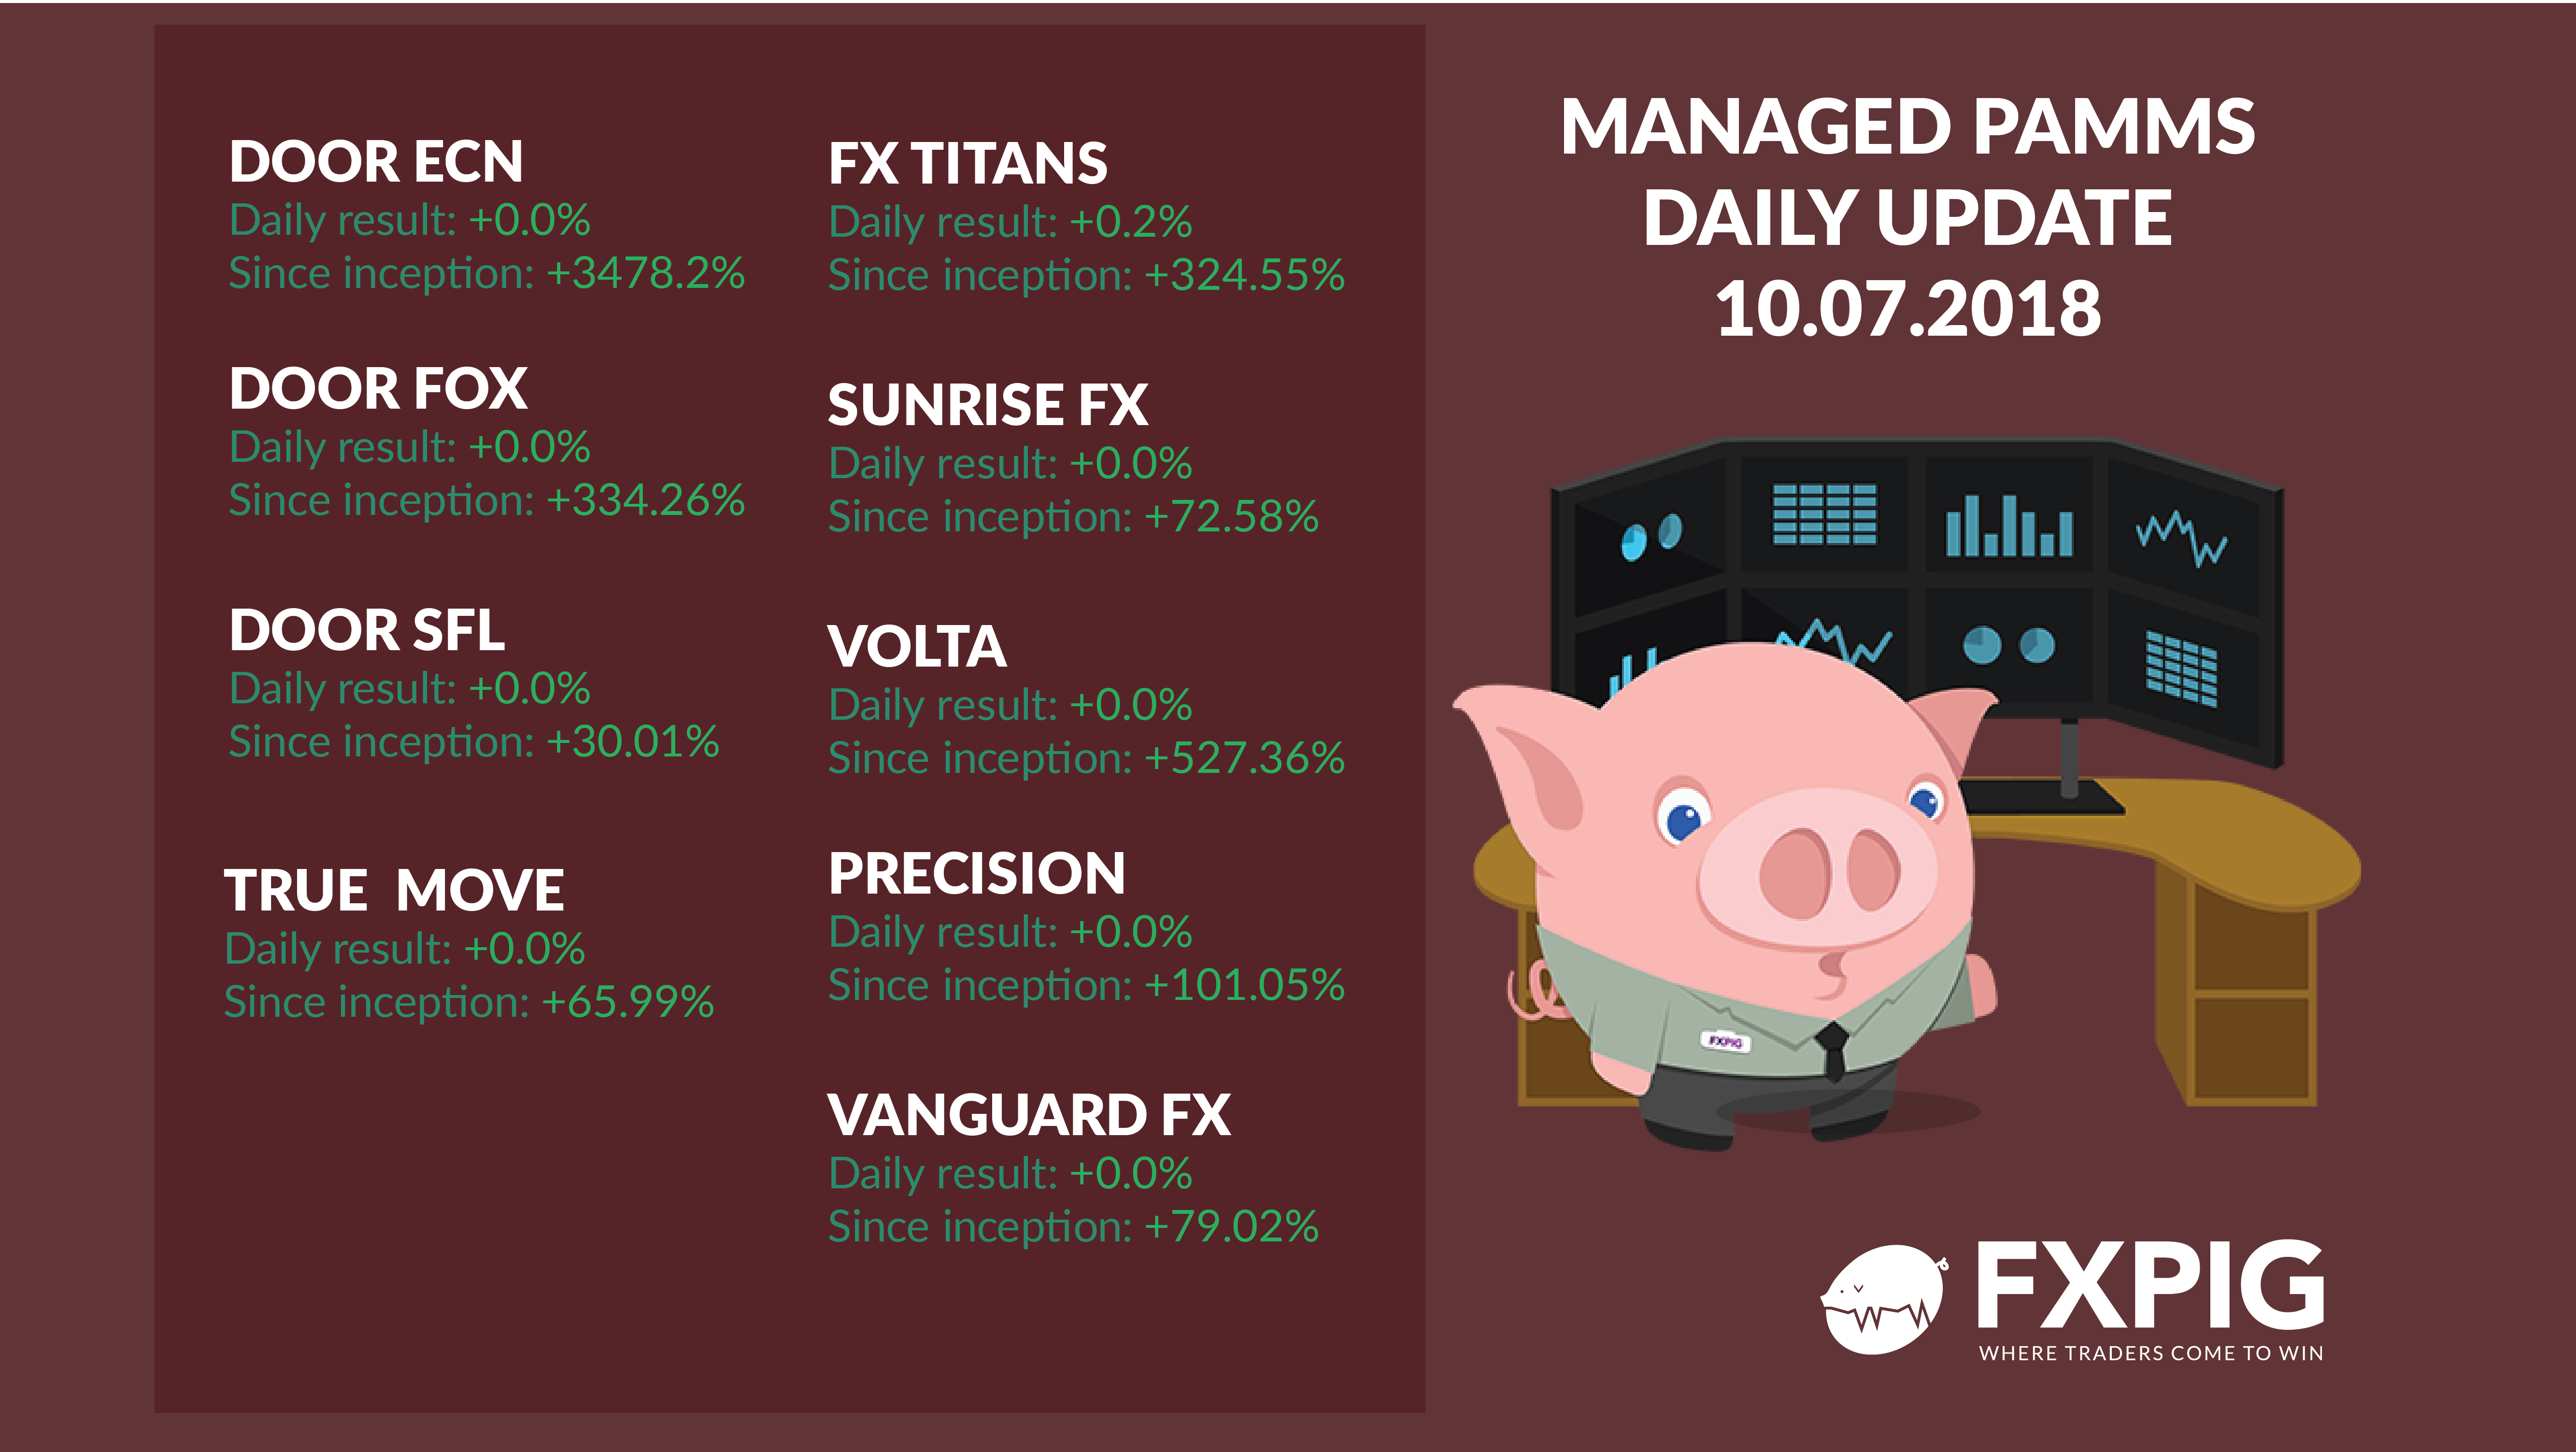 FOREX_managed-daily-accounts-results1007_FXPIG